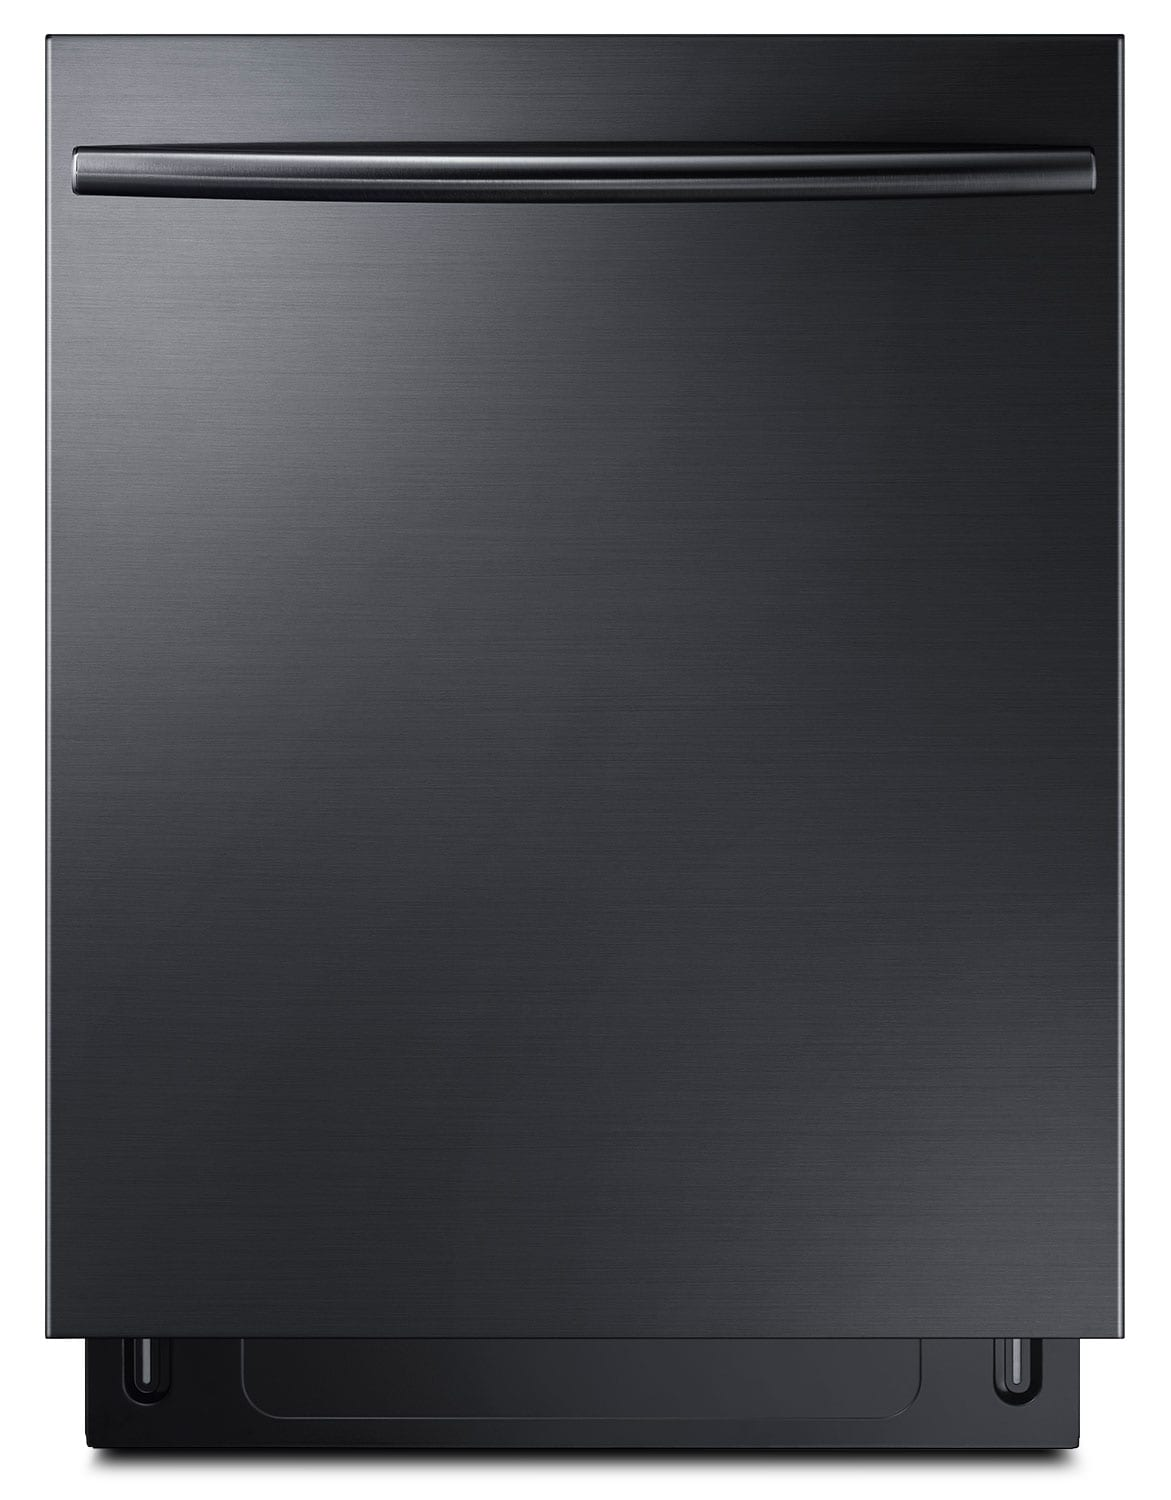 Samsung Built In Dishwasher With Auto Open Drying